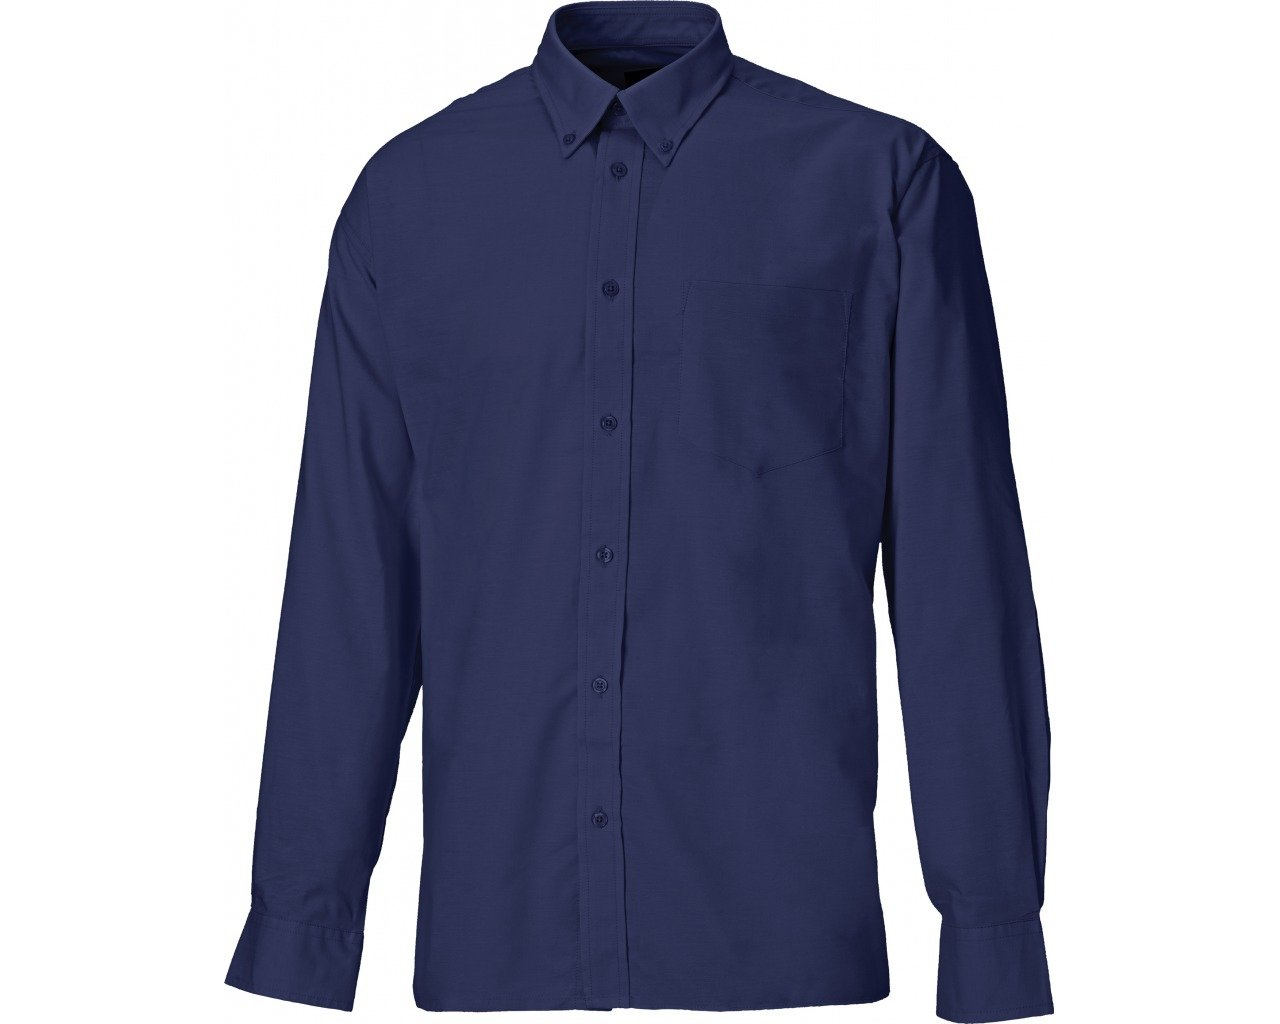 Dickies SH64200-NB-17 Oxford - Camisa de manga larga (talla 17), color azul marino: Amazon.es: Industria, empresas y ciencia